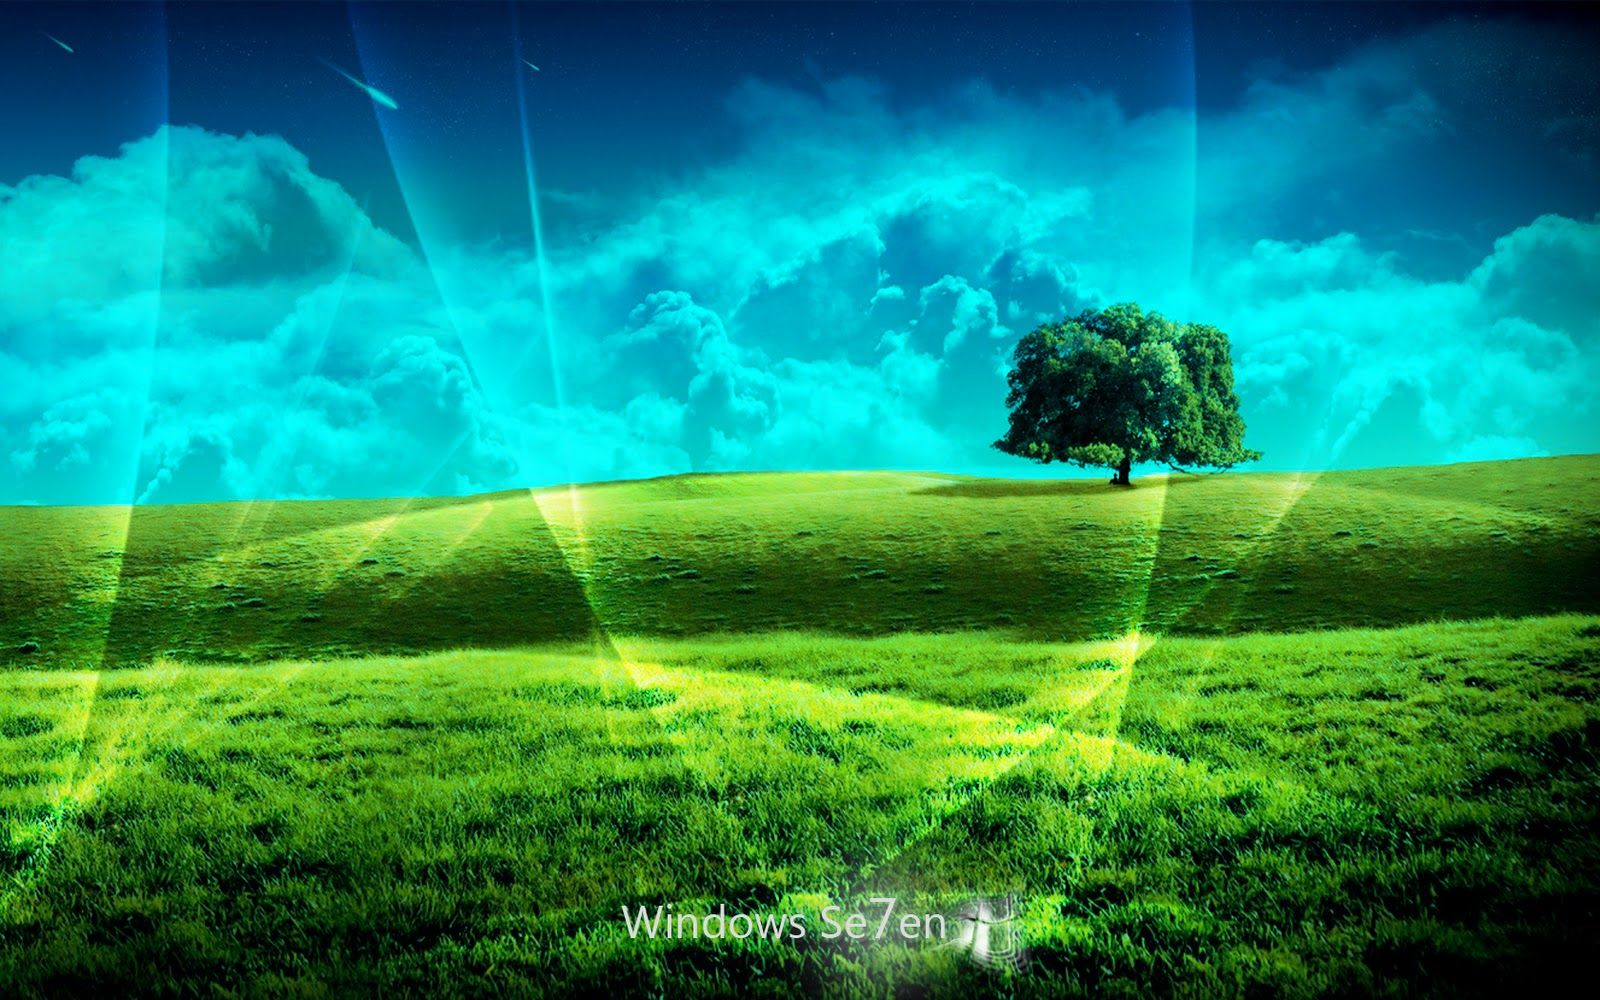 Windows 7 3d Desktop Wallpapers Free Download Download Free 3d Animated Desktop Wallpaper Desktop